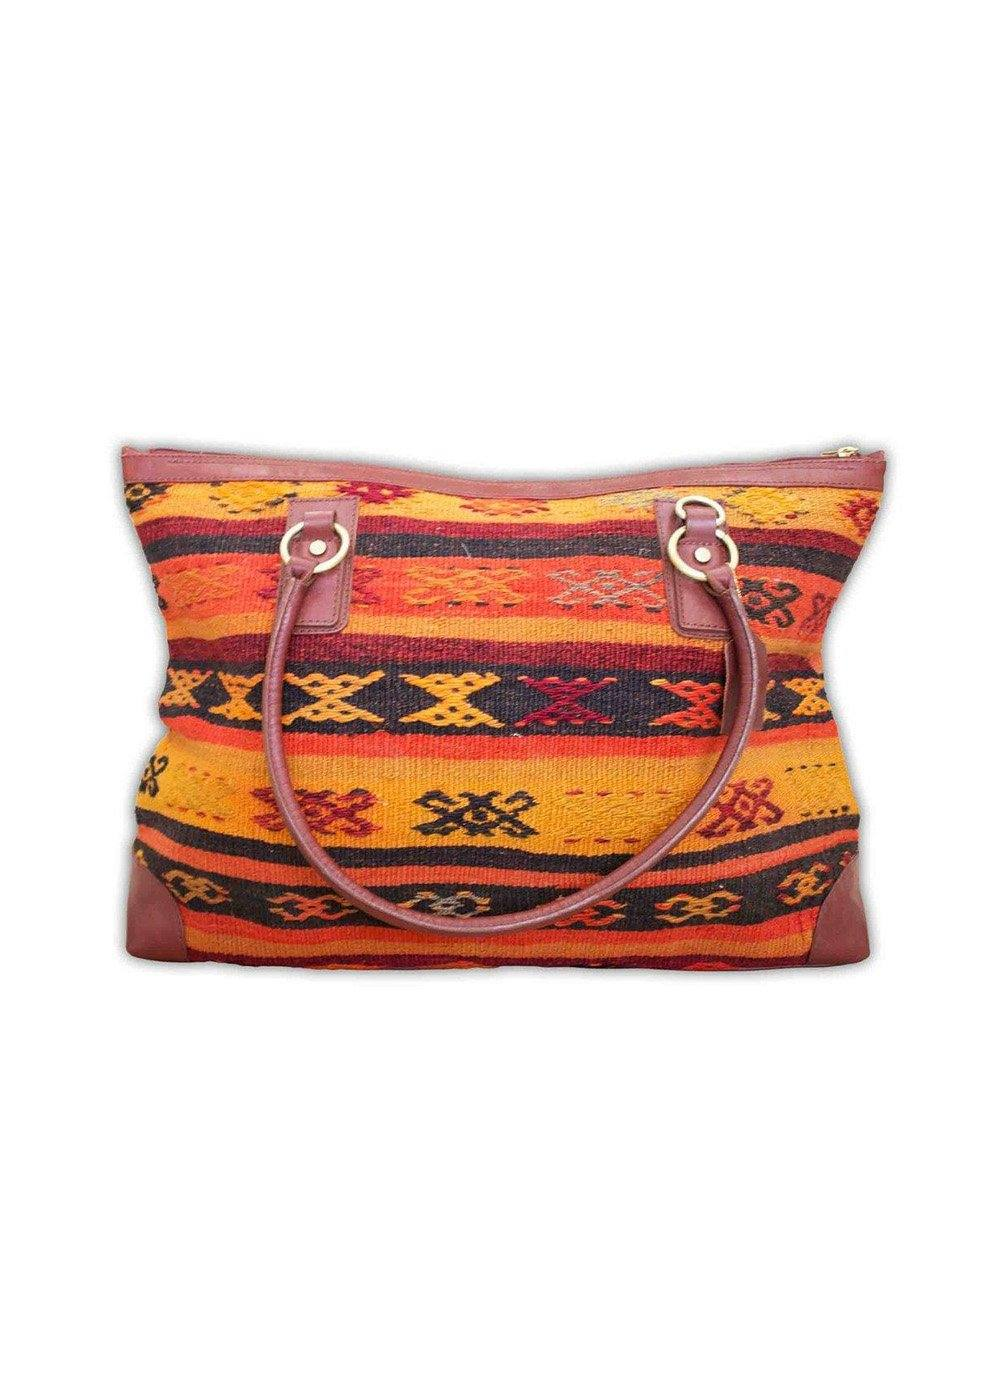 Accessories - Kilim Weekender Bag